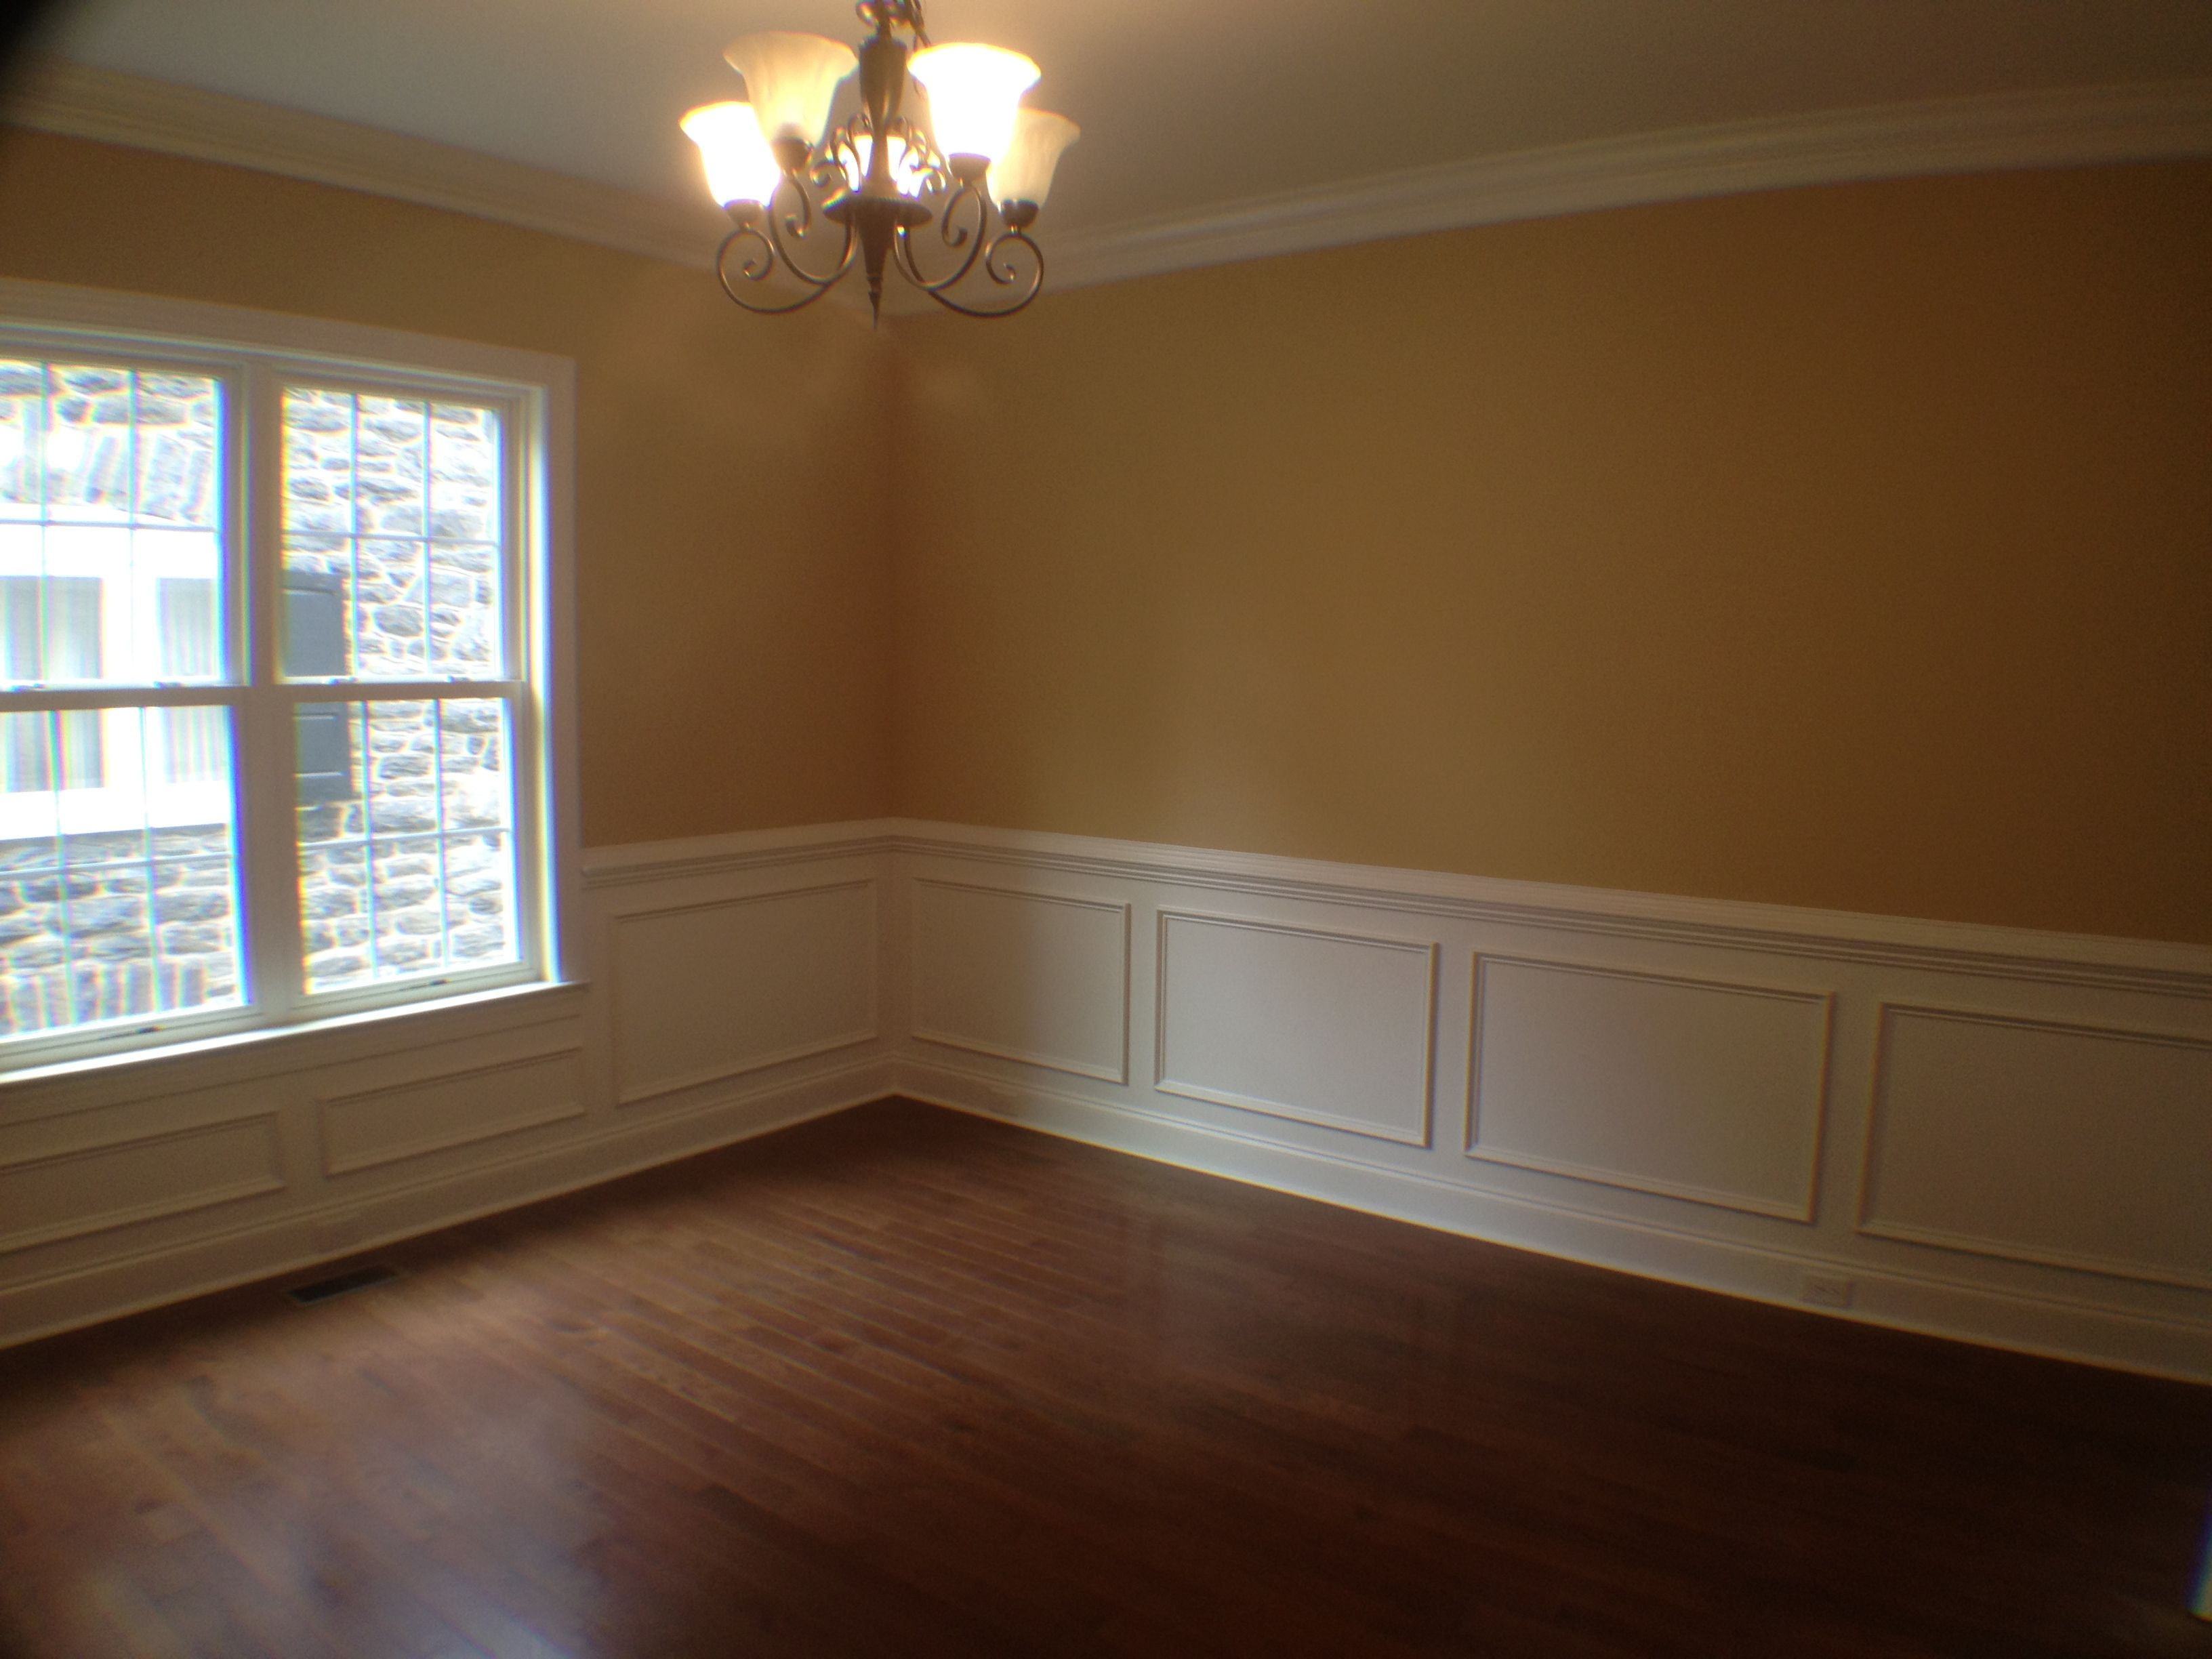 Dining Room Moulding Ideas Part - 41: Dining Room With Chair Rail, Shadow Boxing, And Crown Moulding.